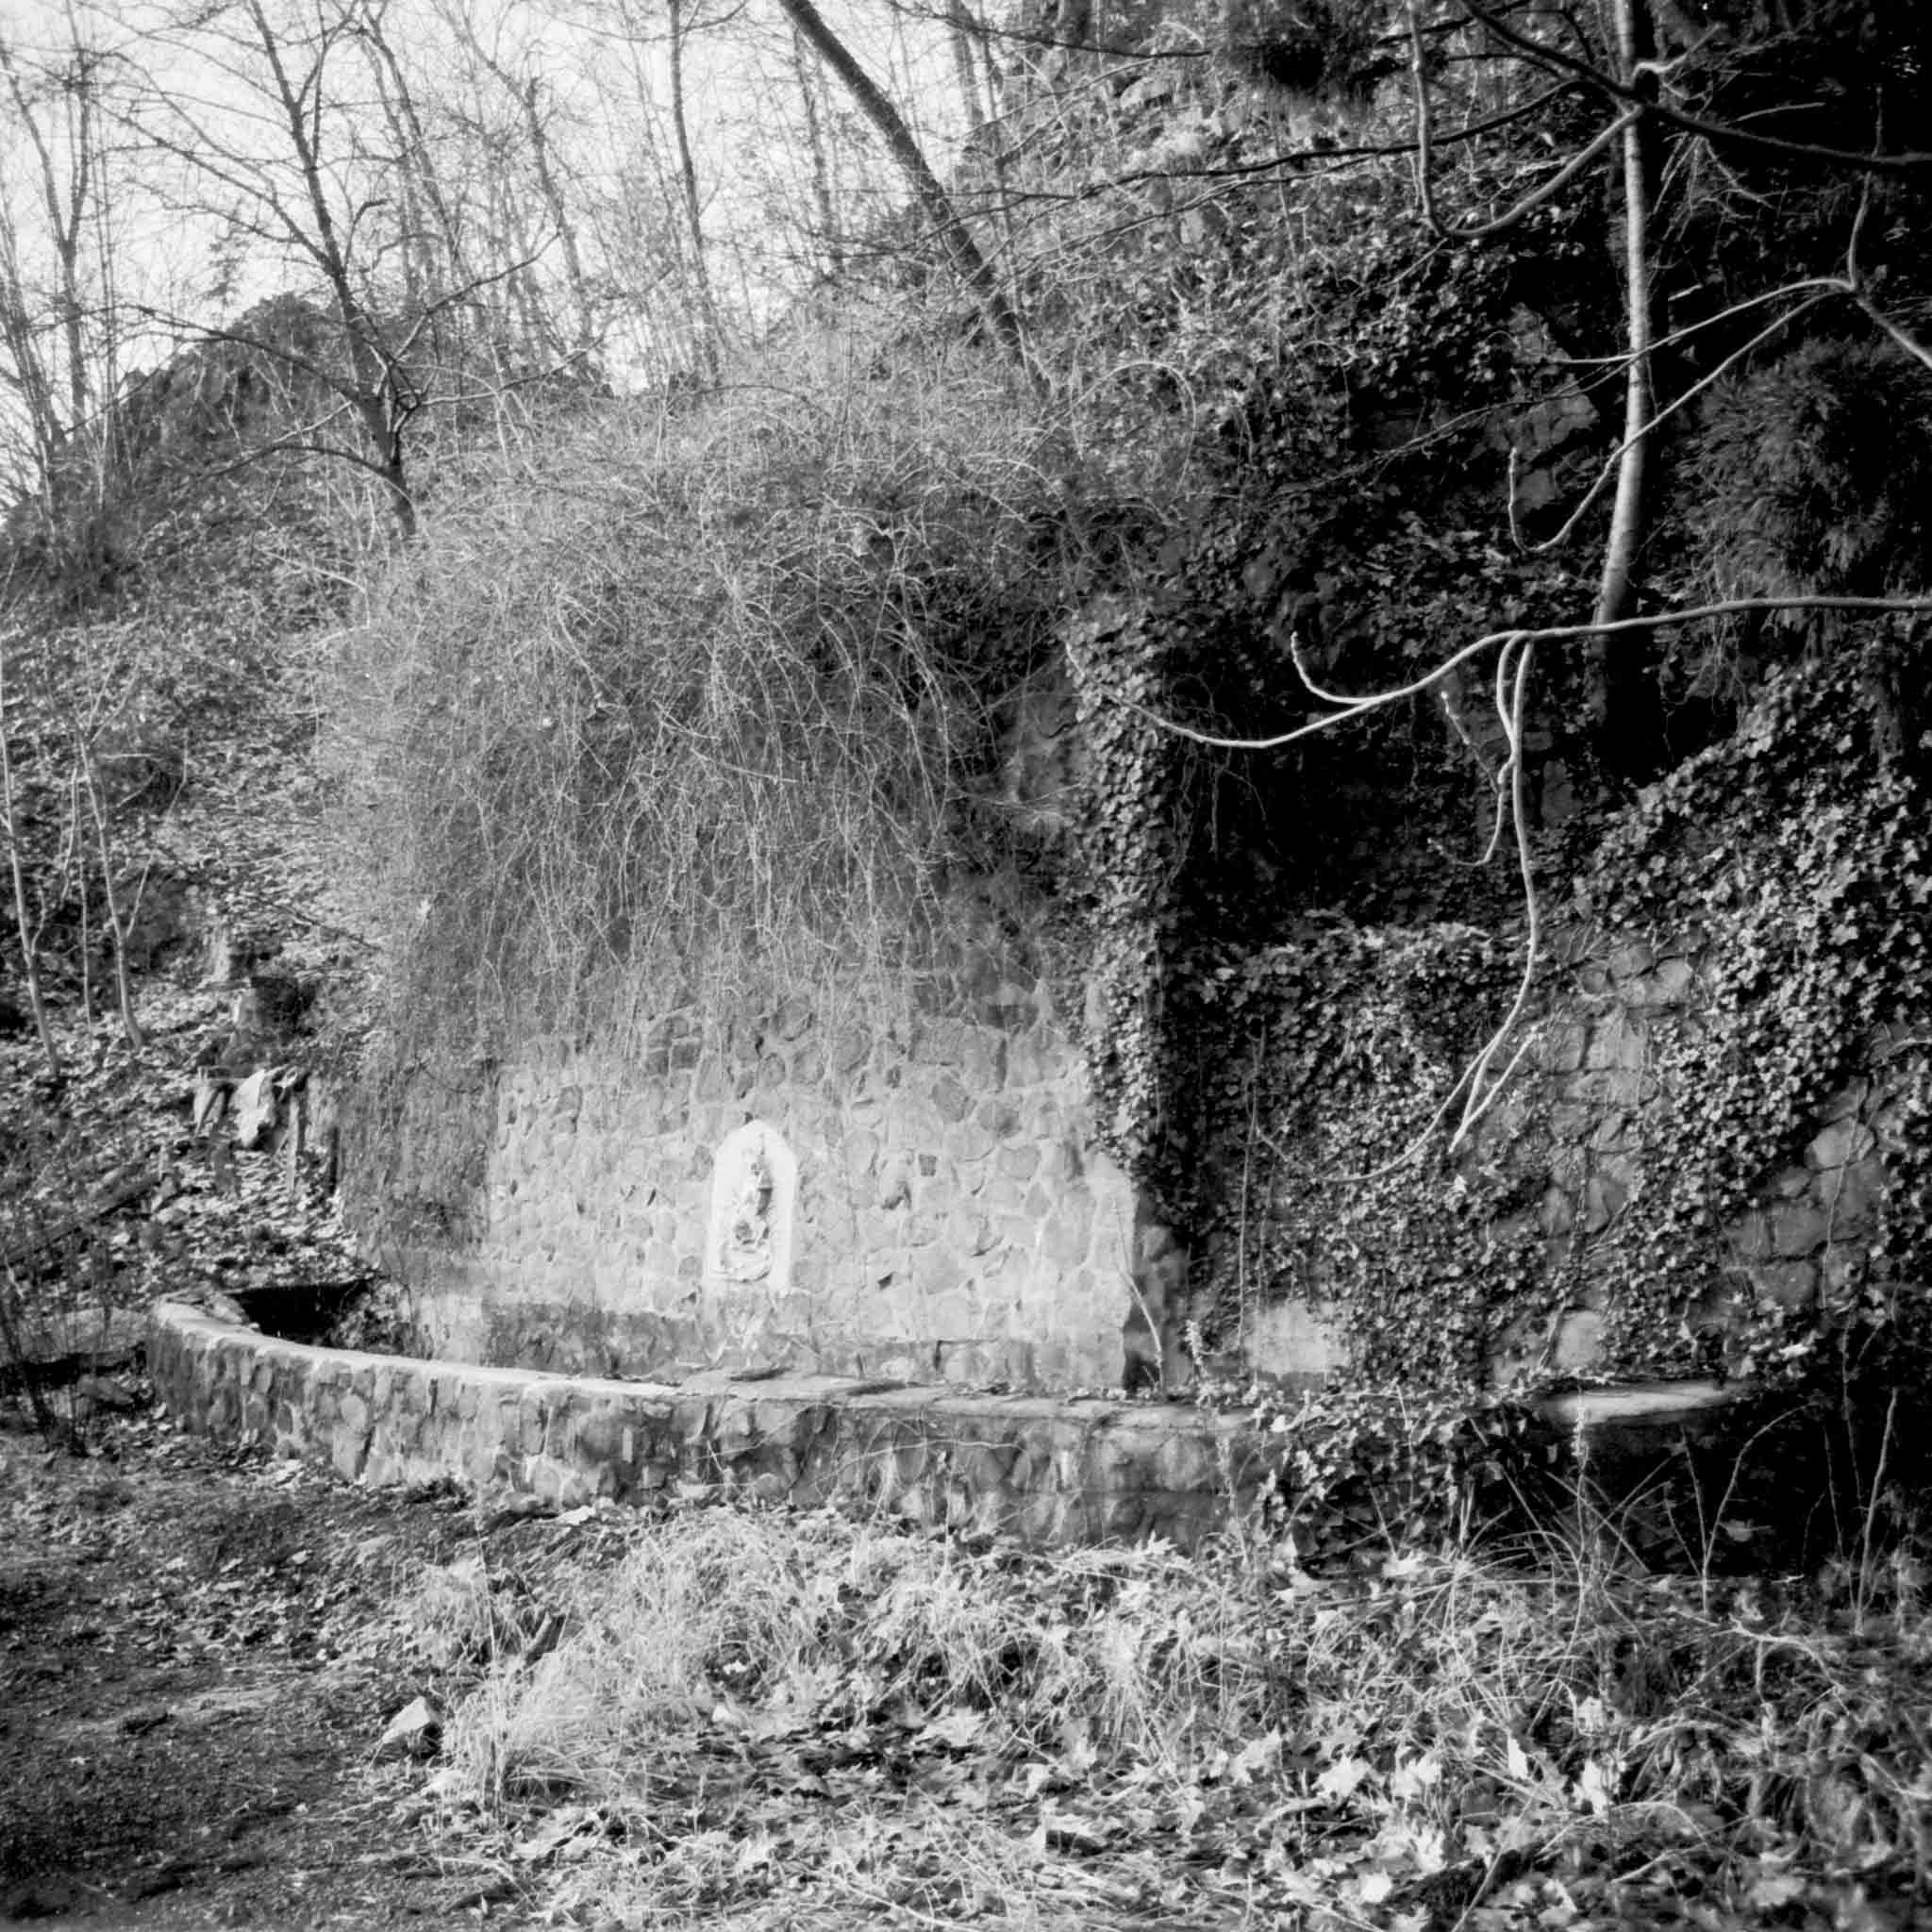 Black and white photograph of building ruins in a forest in Cedar Grove, New Jersey